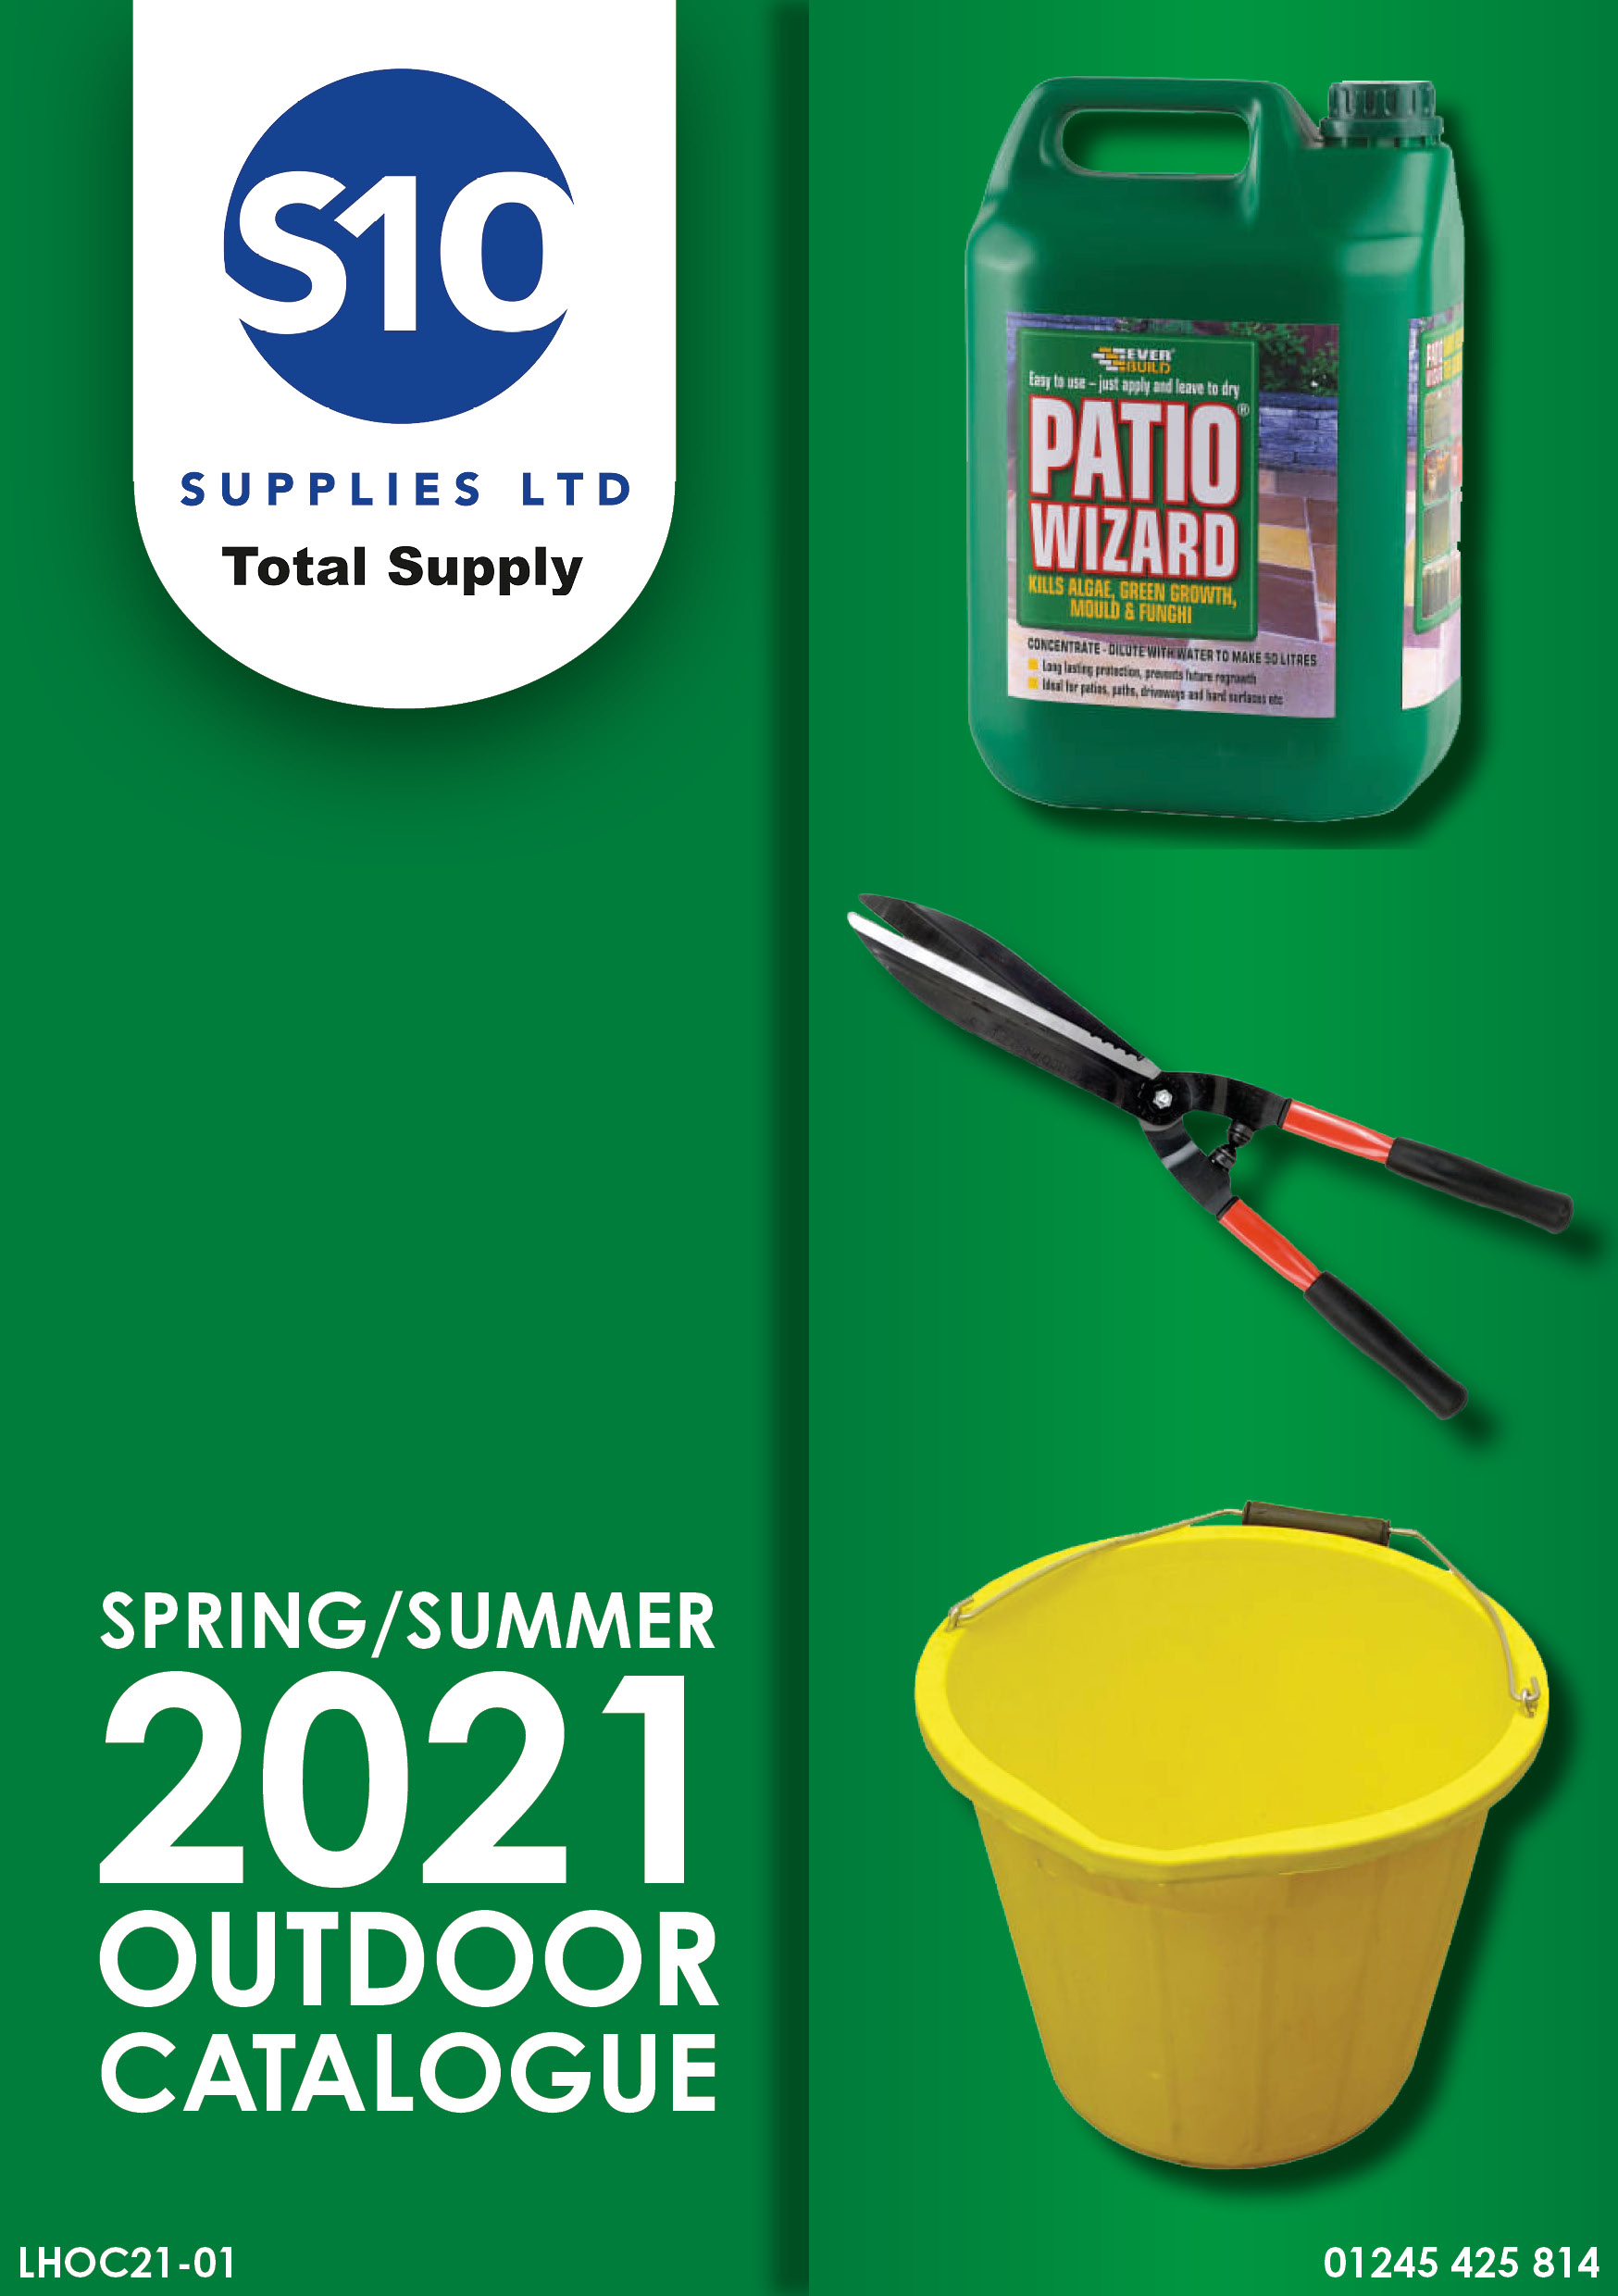 2021 Outdoor Catalogue